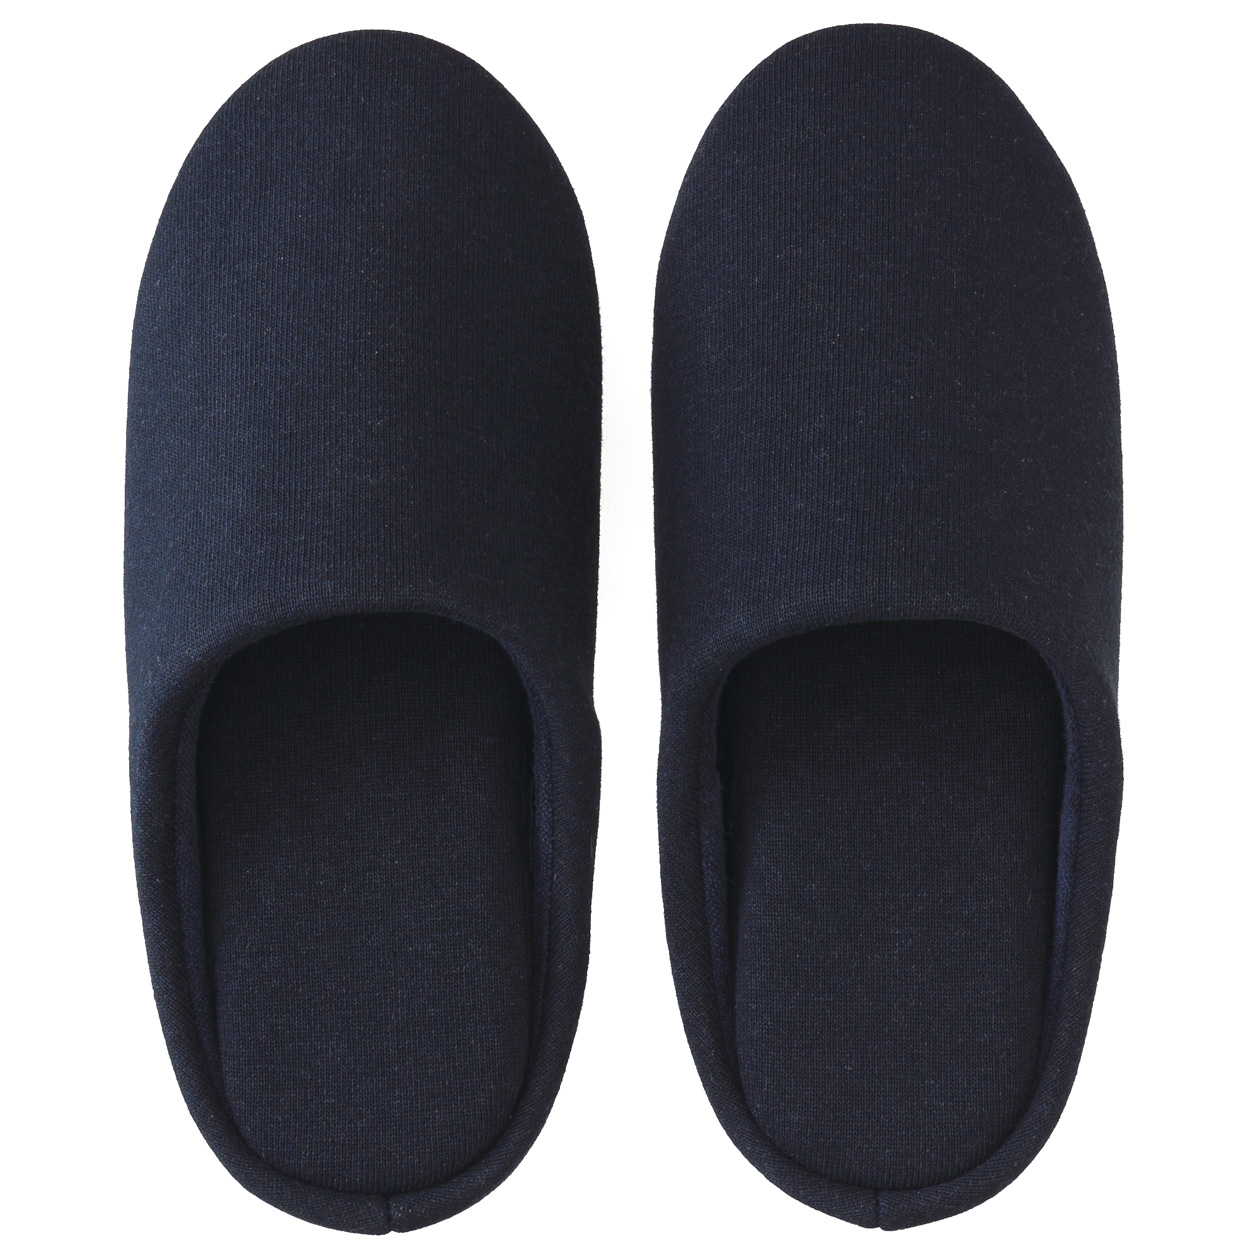 COTTON JERSEY INNER SOLE CUSHION SLIPPERS M NAVY